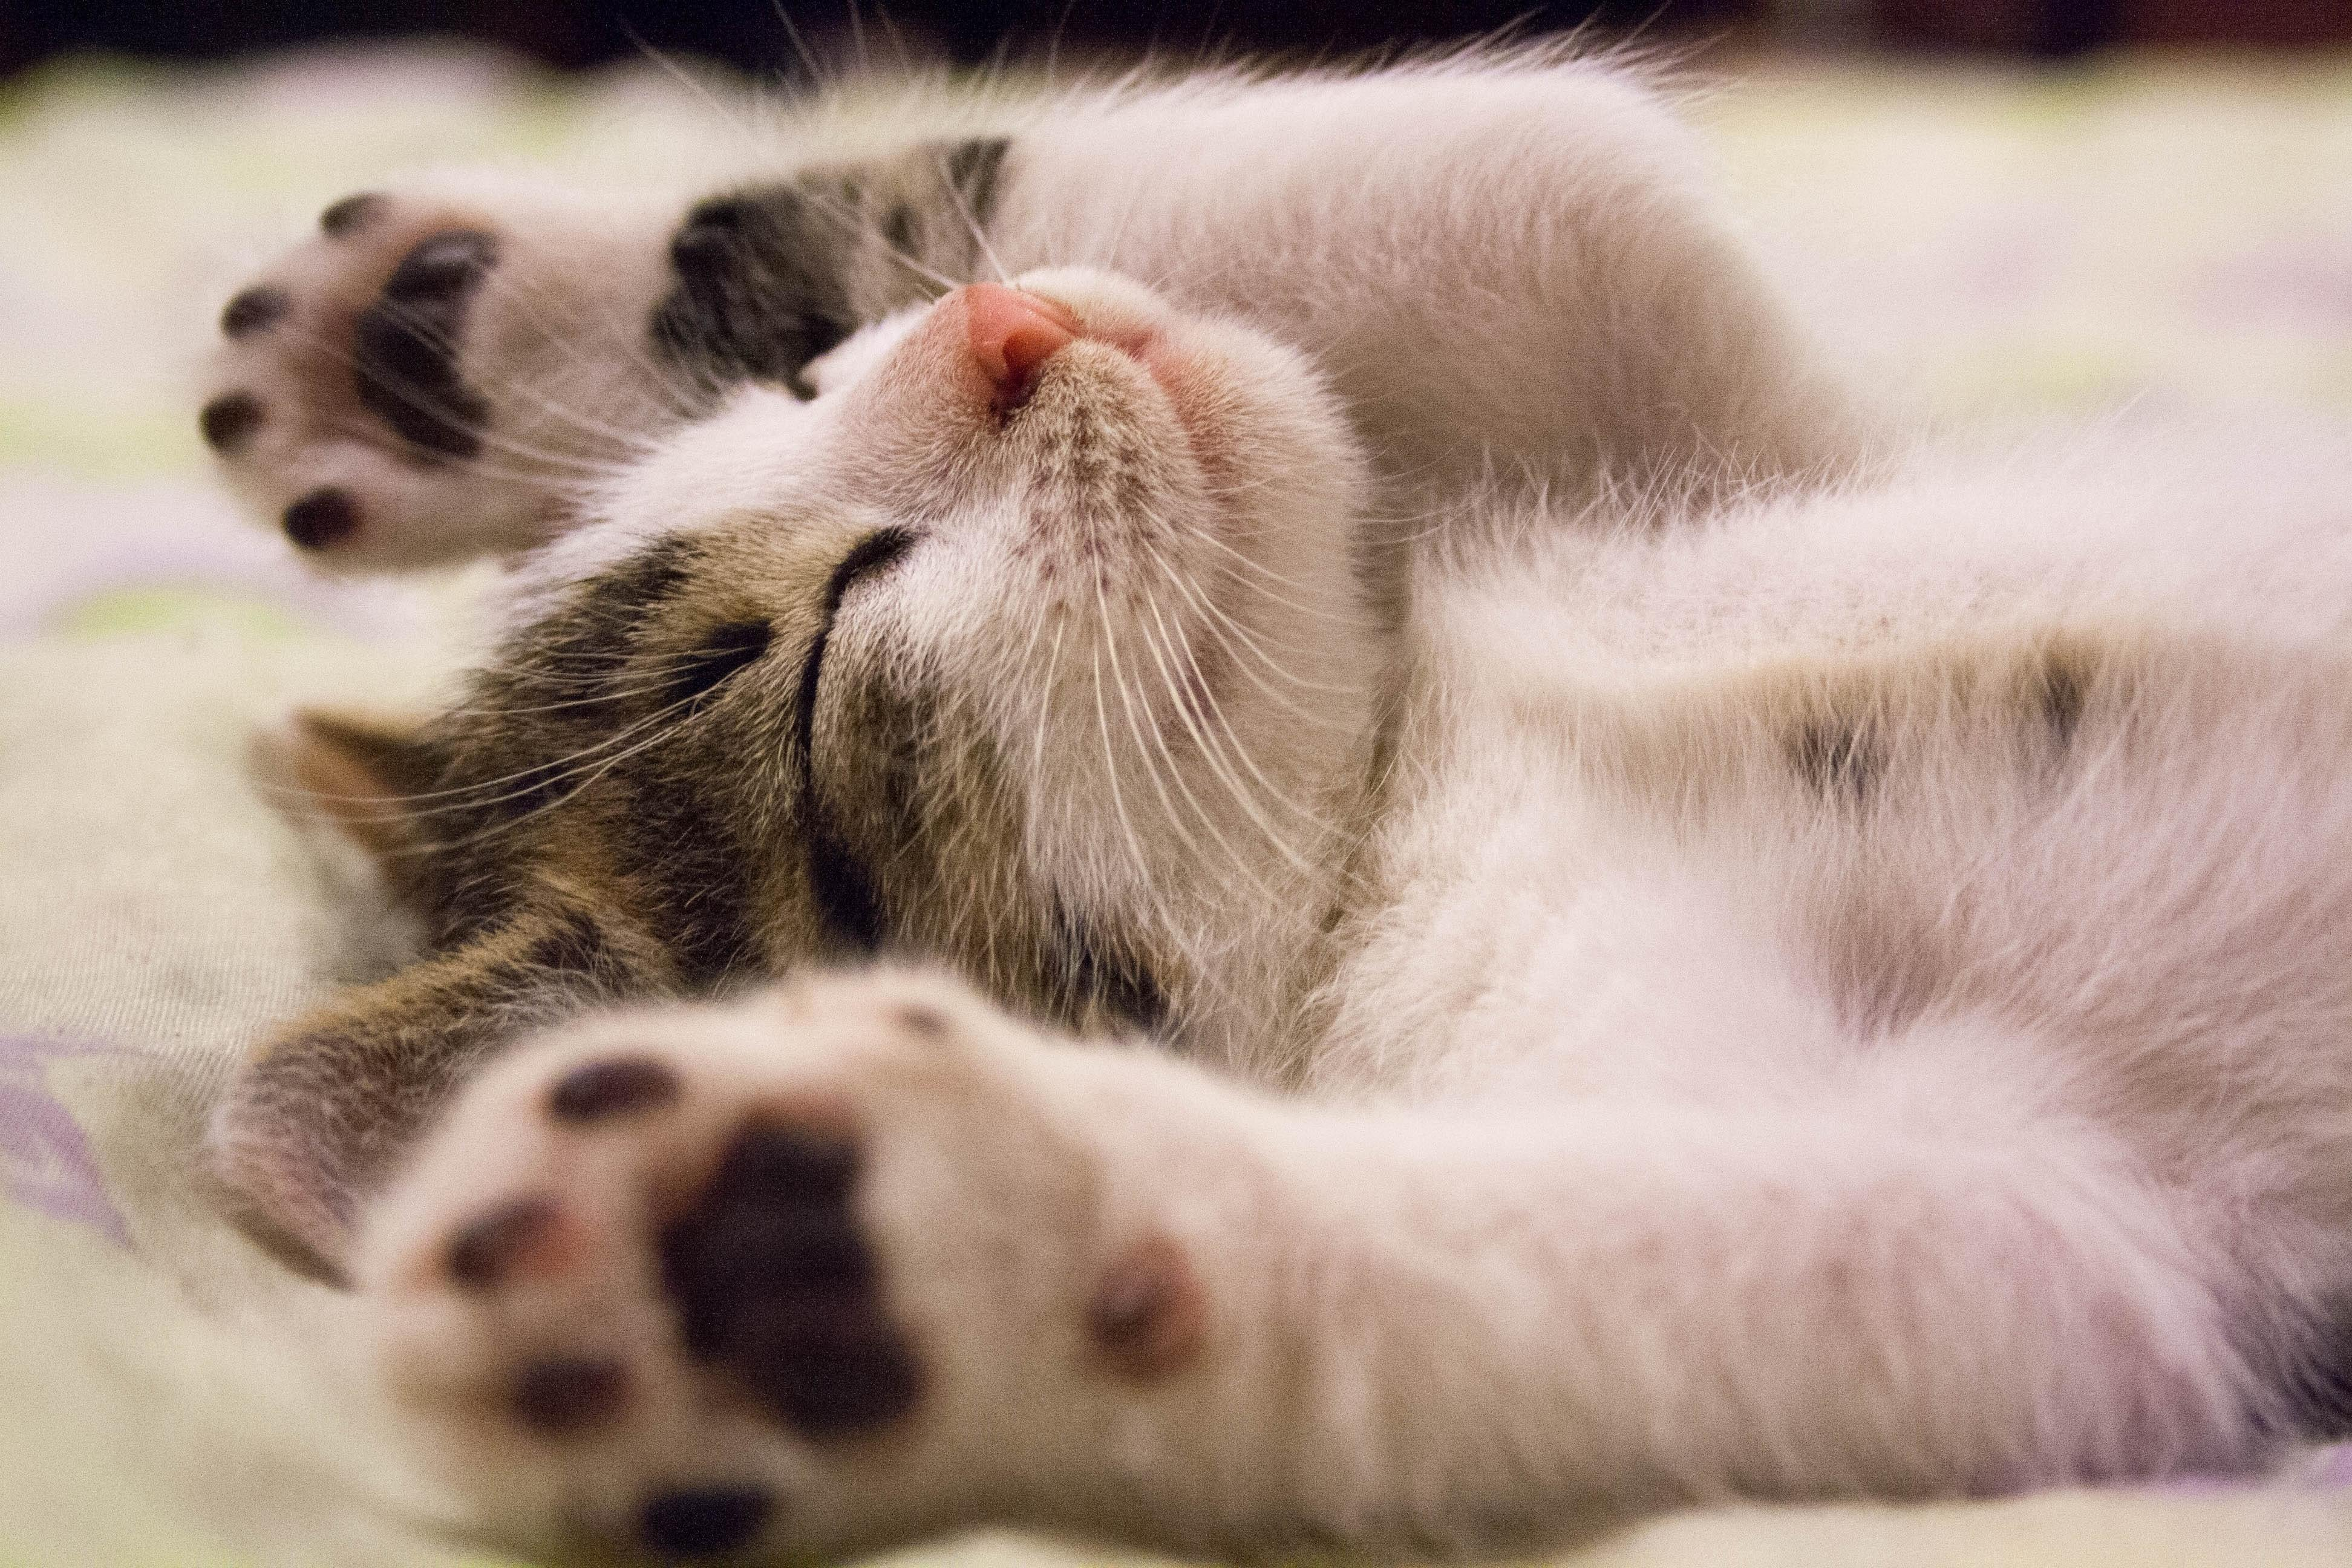 Ringworm symptoms and treatments in cats